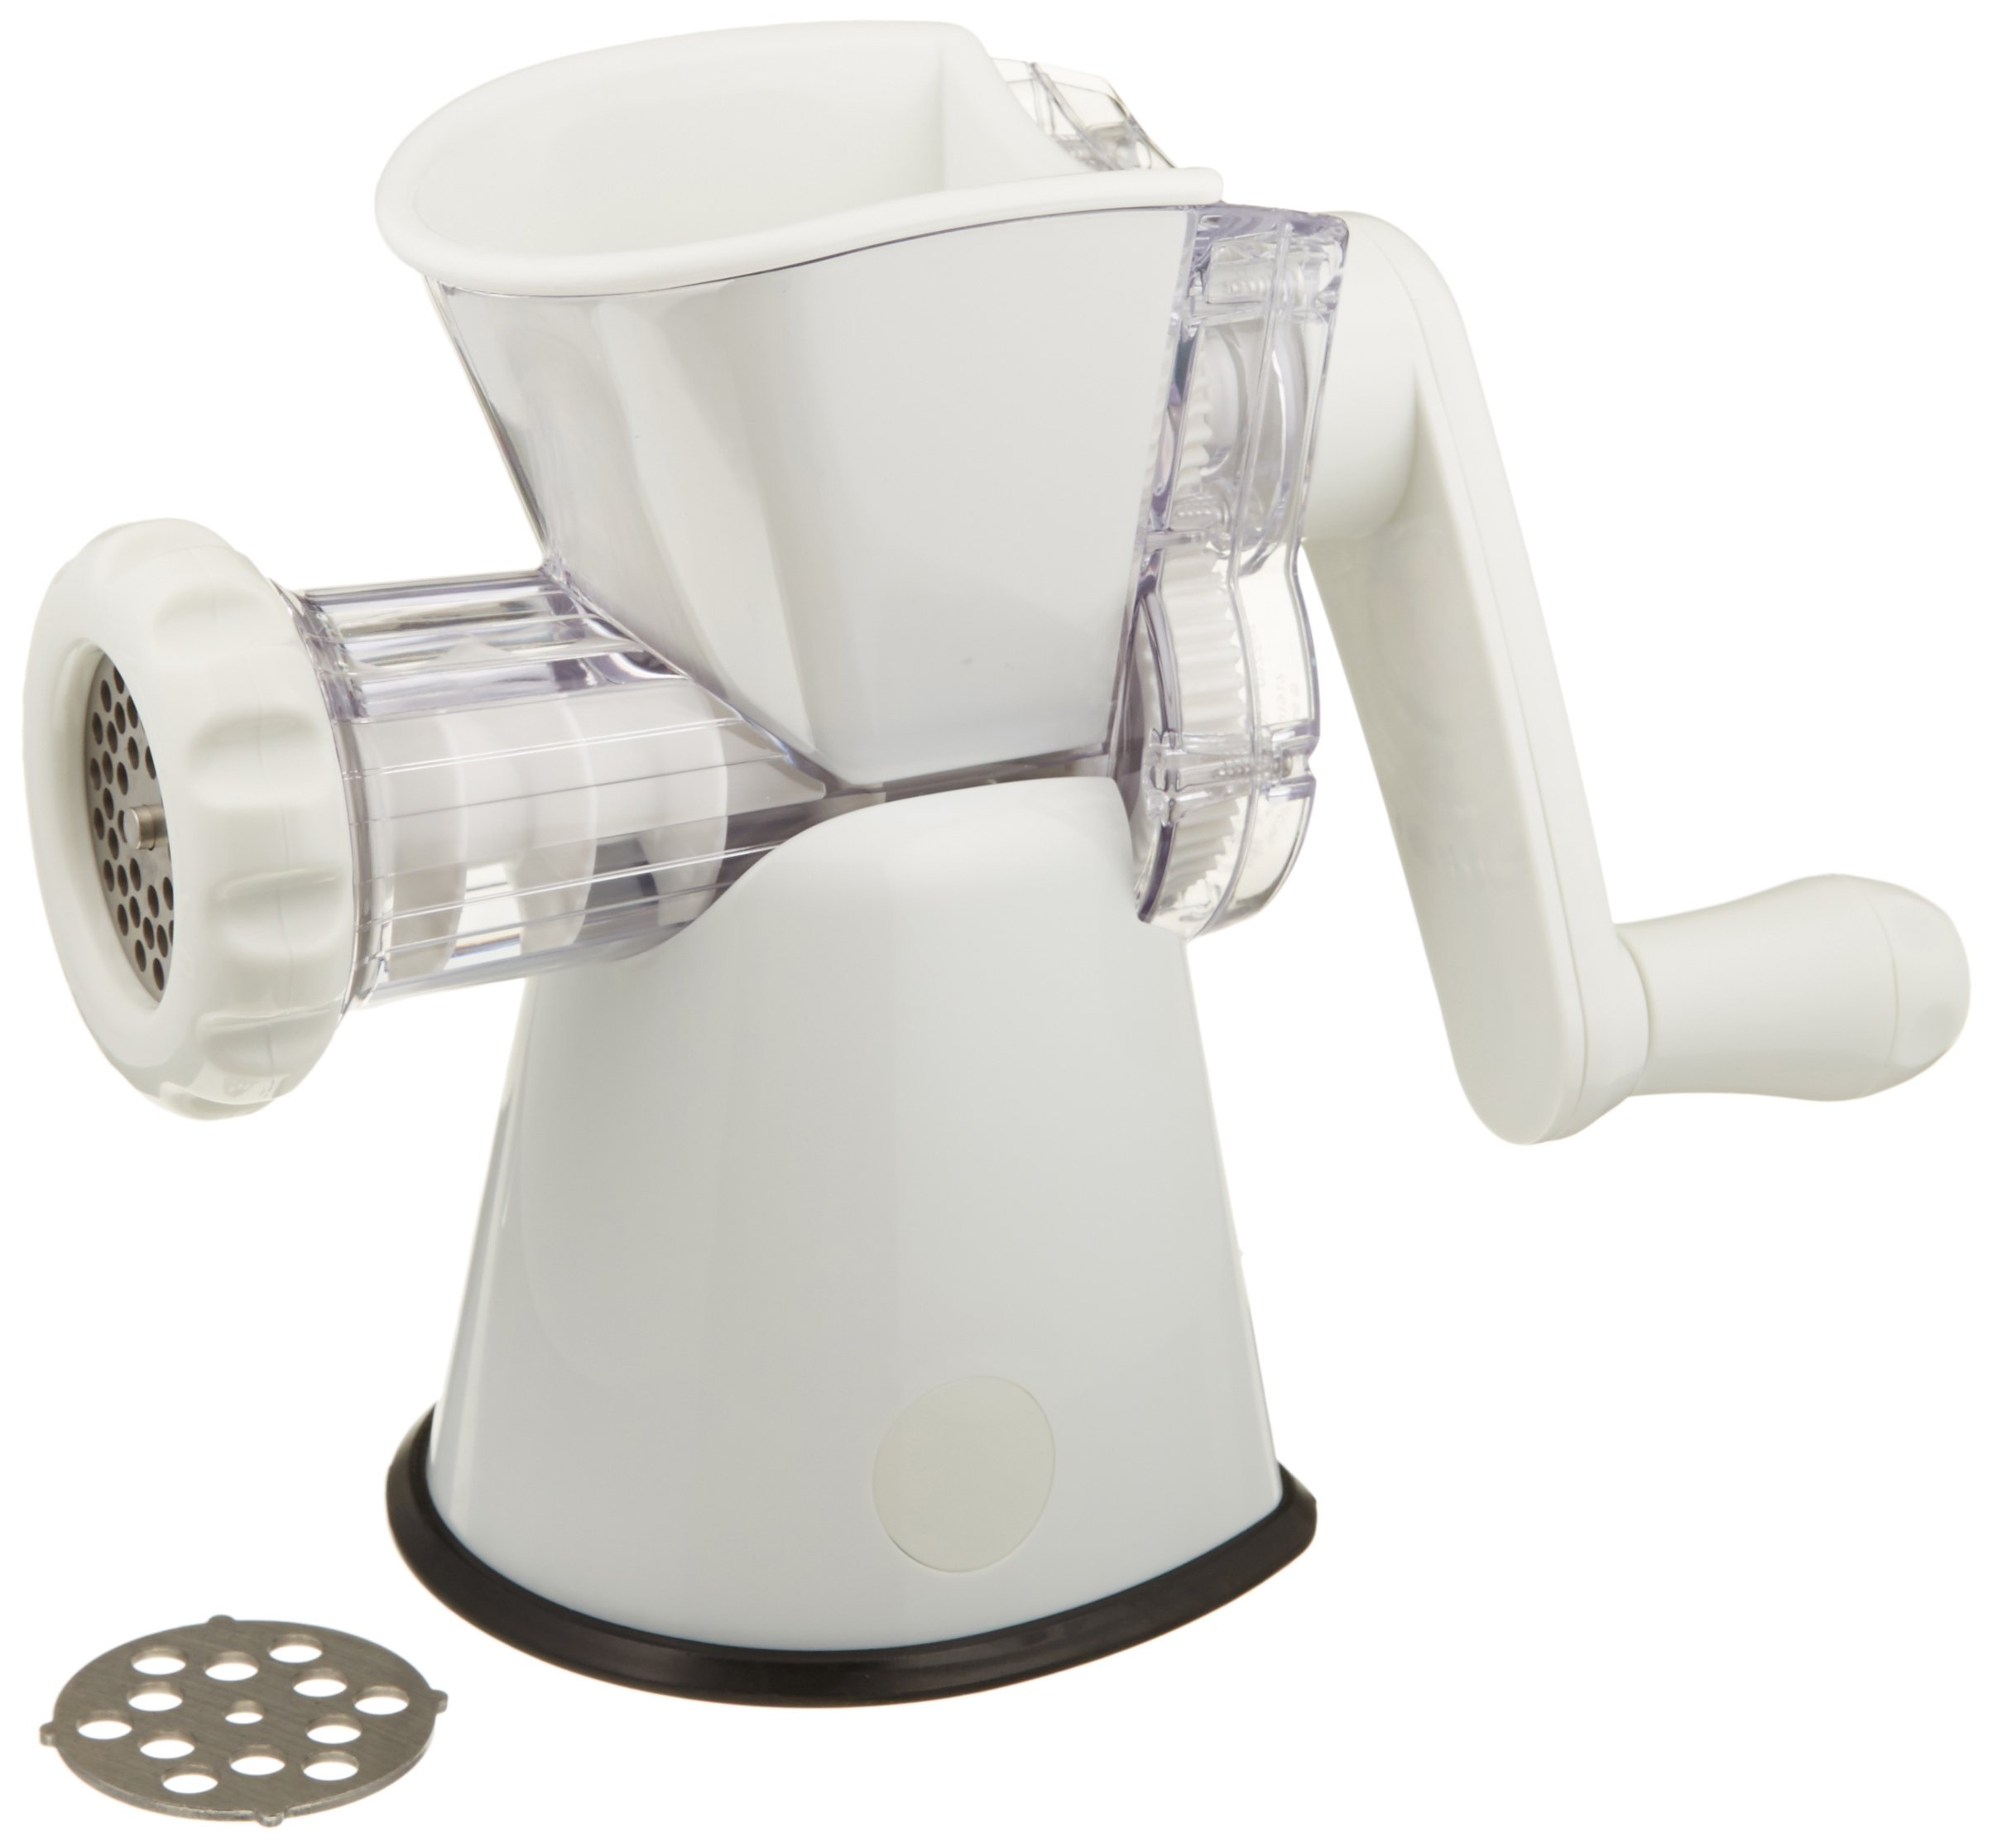 Weston No. 8 Manual Food Grinder (16-0201-W) for Fresh Ground Meats and Vegetables, With Sturdy Suction Base by Weston